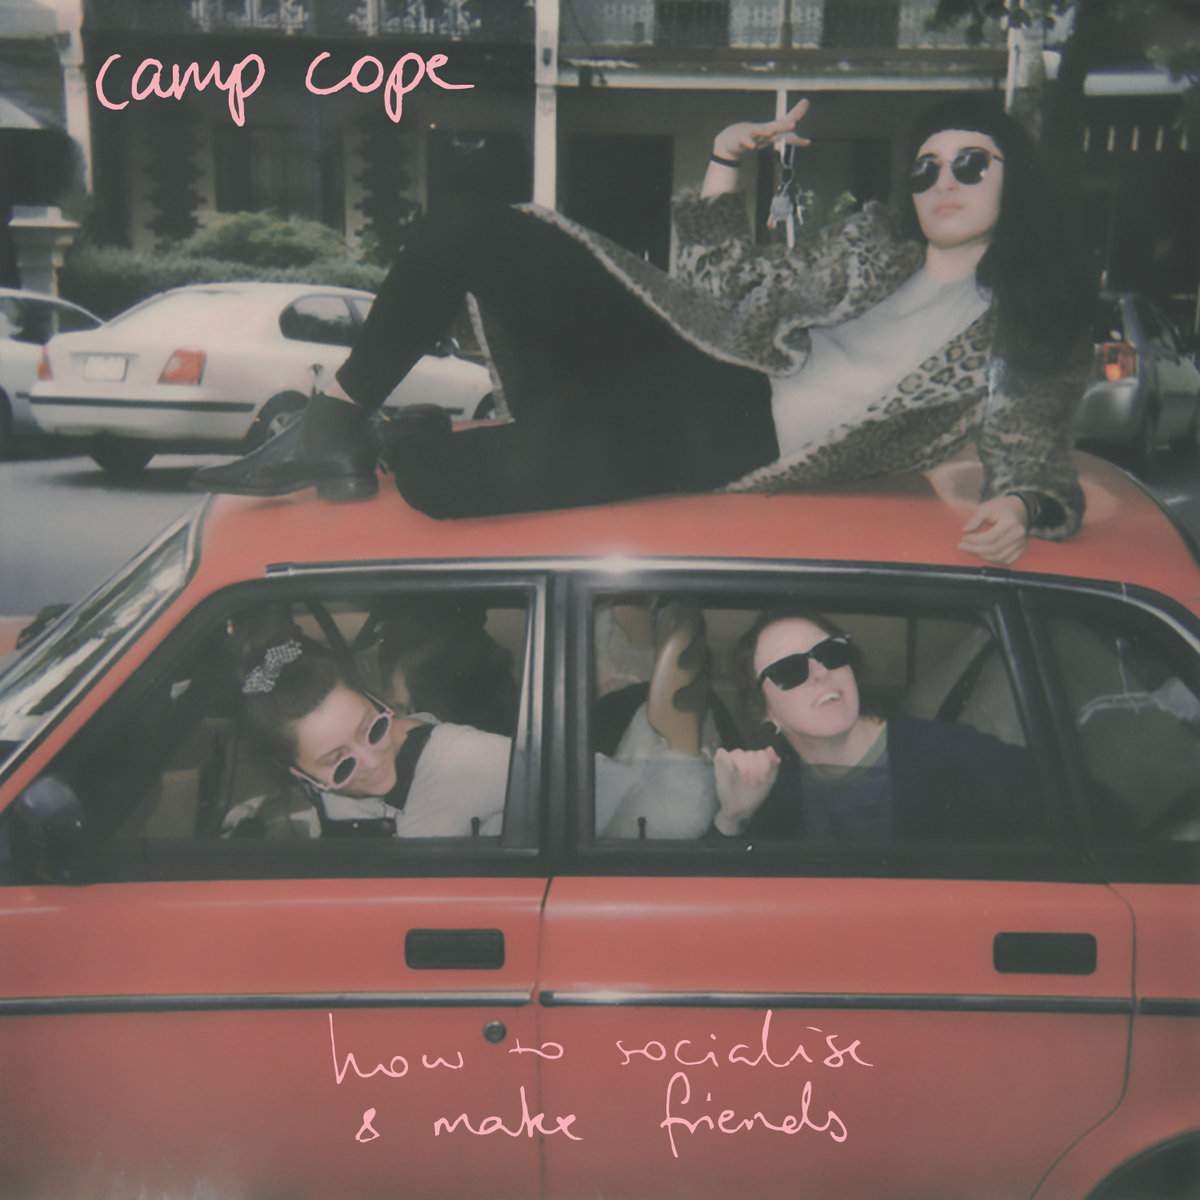 2. Camp Cope - How To Socialise & Make Friends